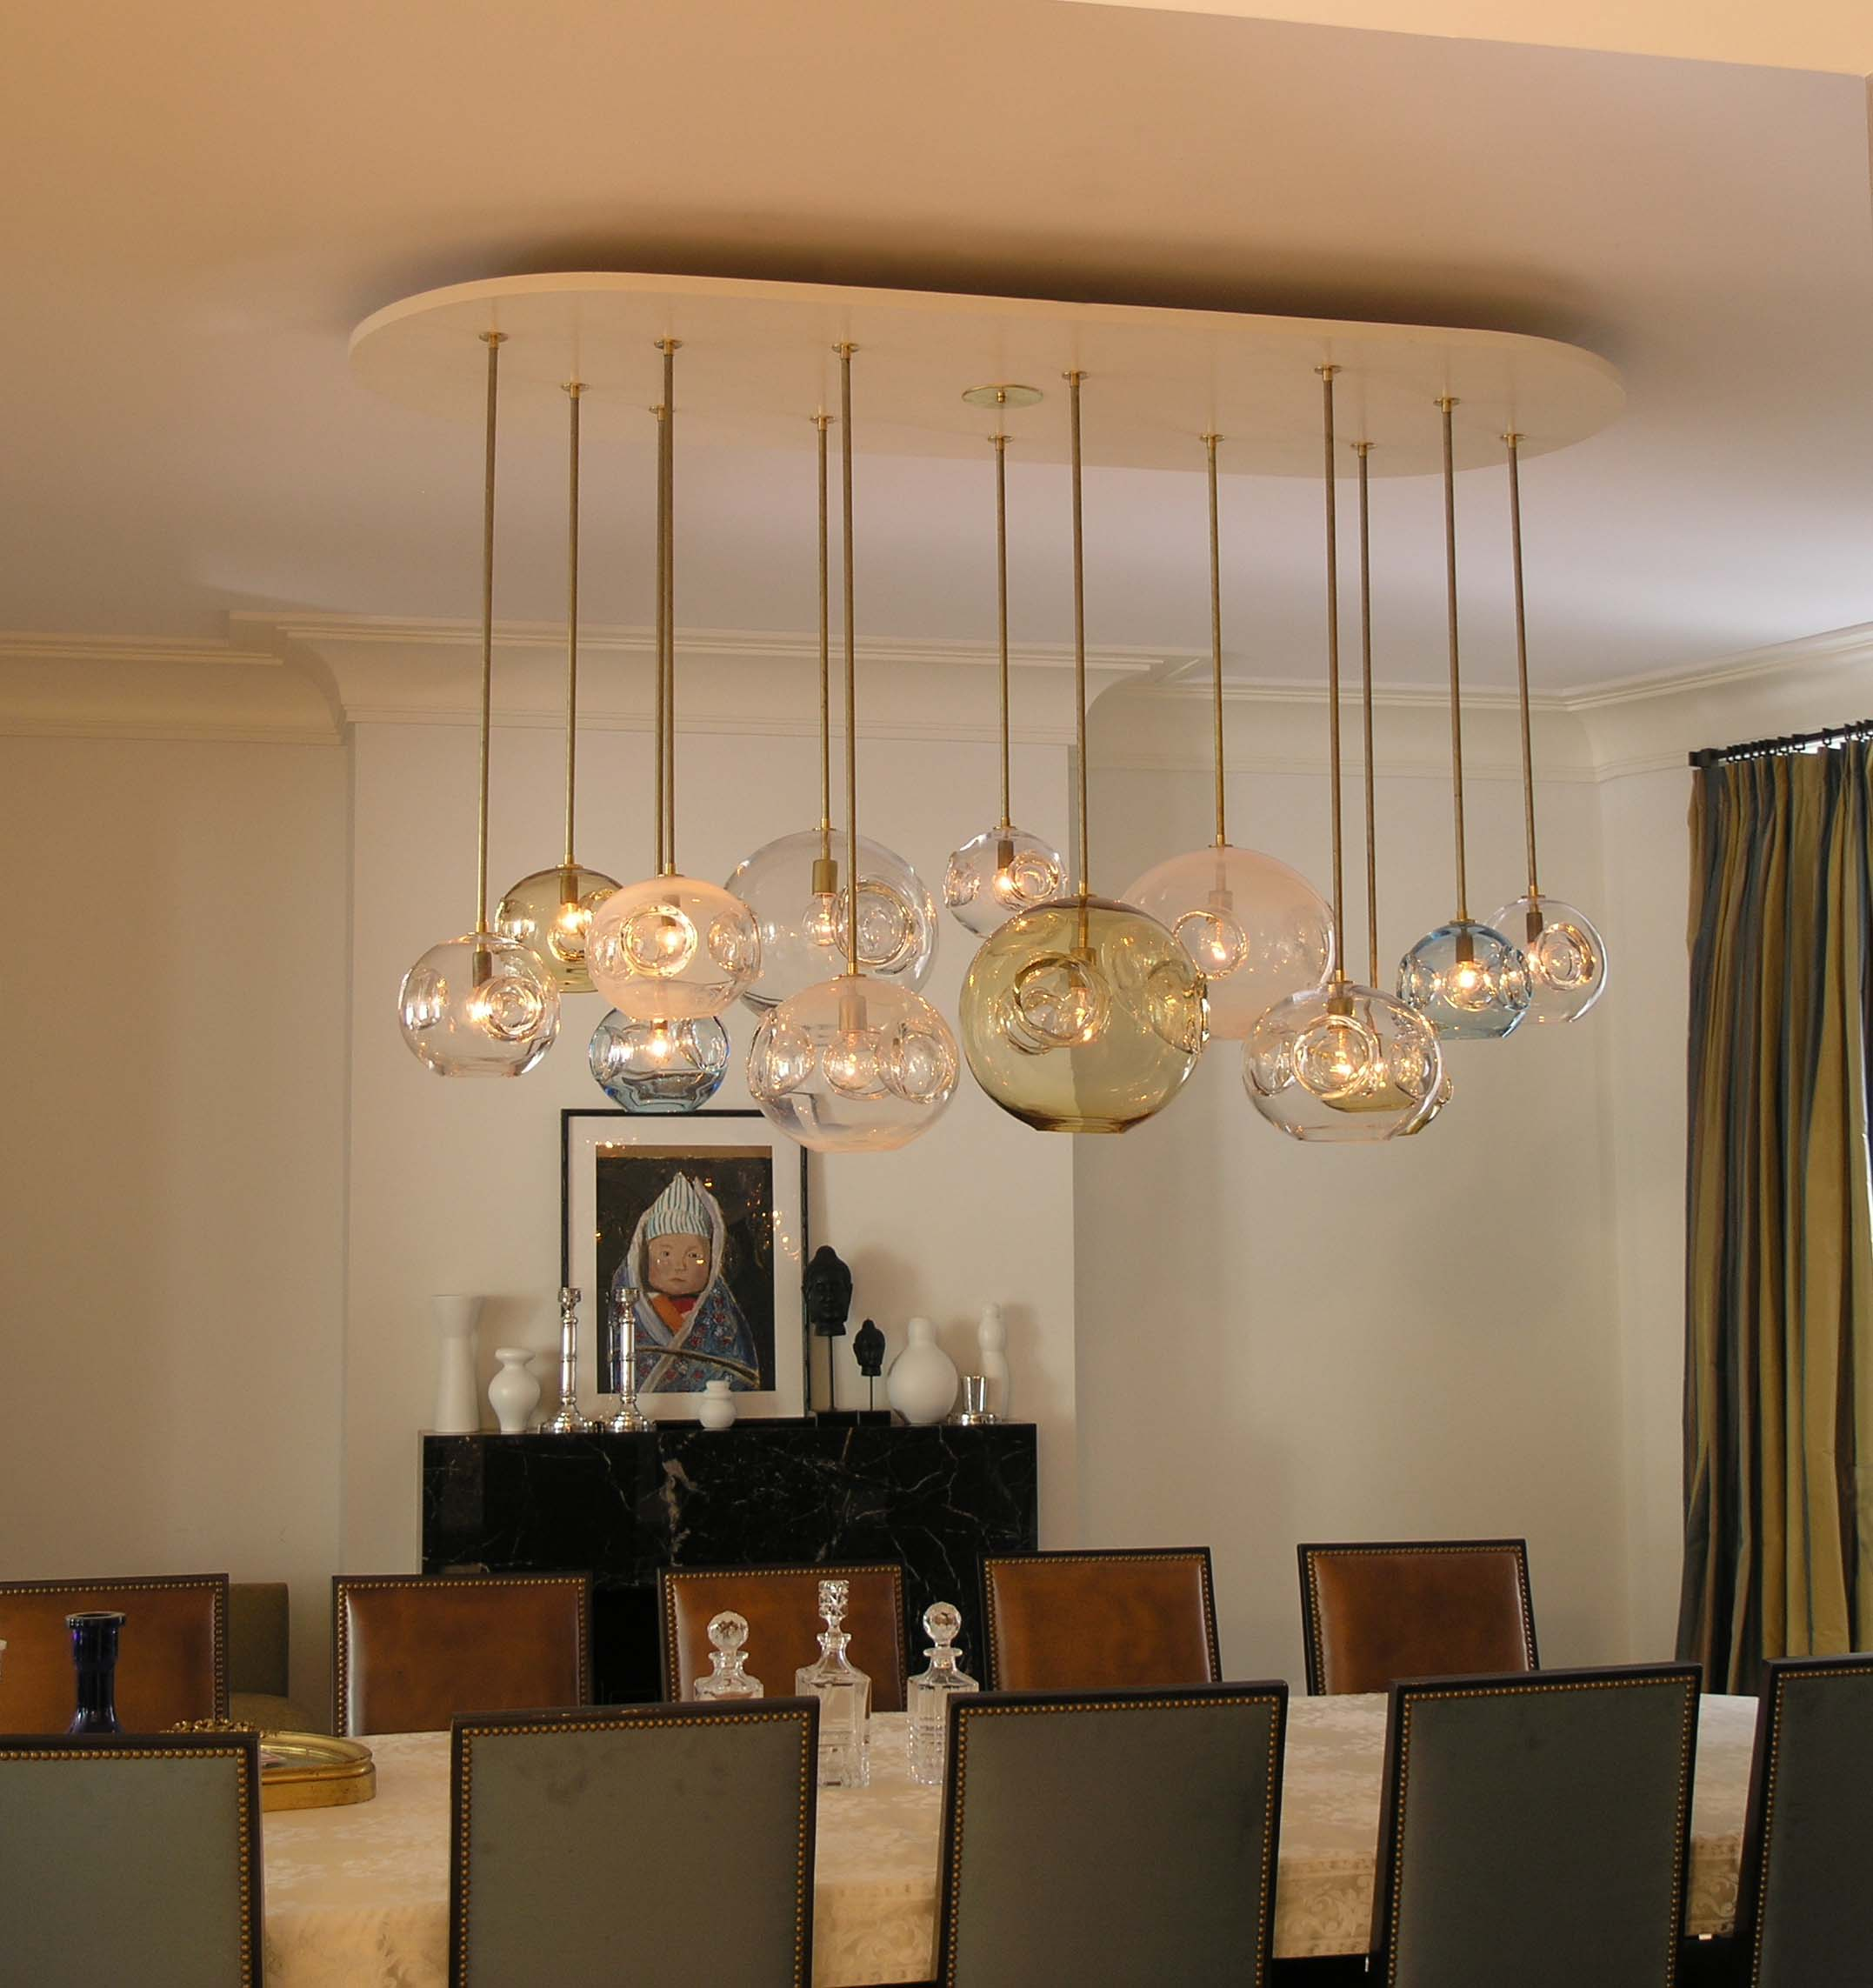 Cream and beige dining toom with round glass light fixtures hanging from the ceiling